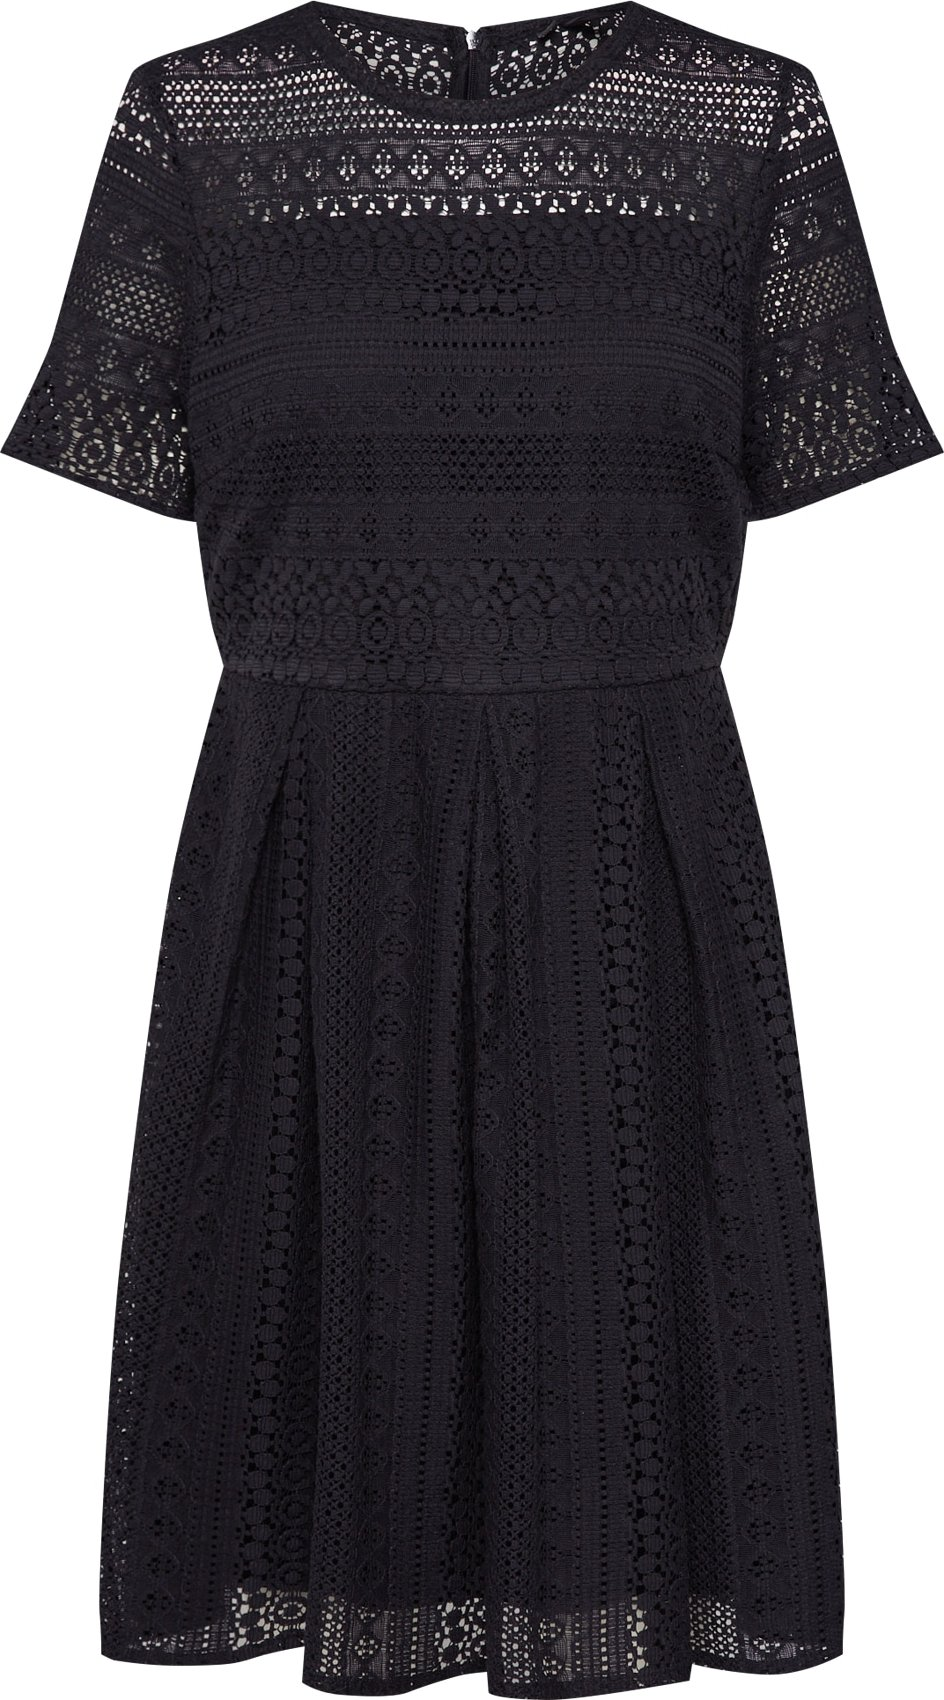 VERO MODA Šaty VMHONEY LACE PLEATED SS DRESS EXP černá Vero Moda